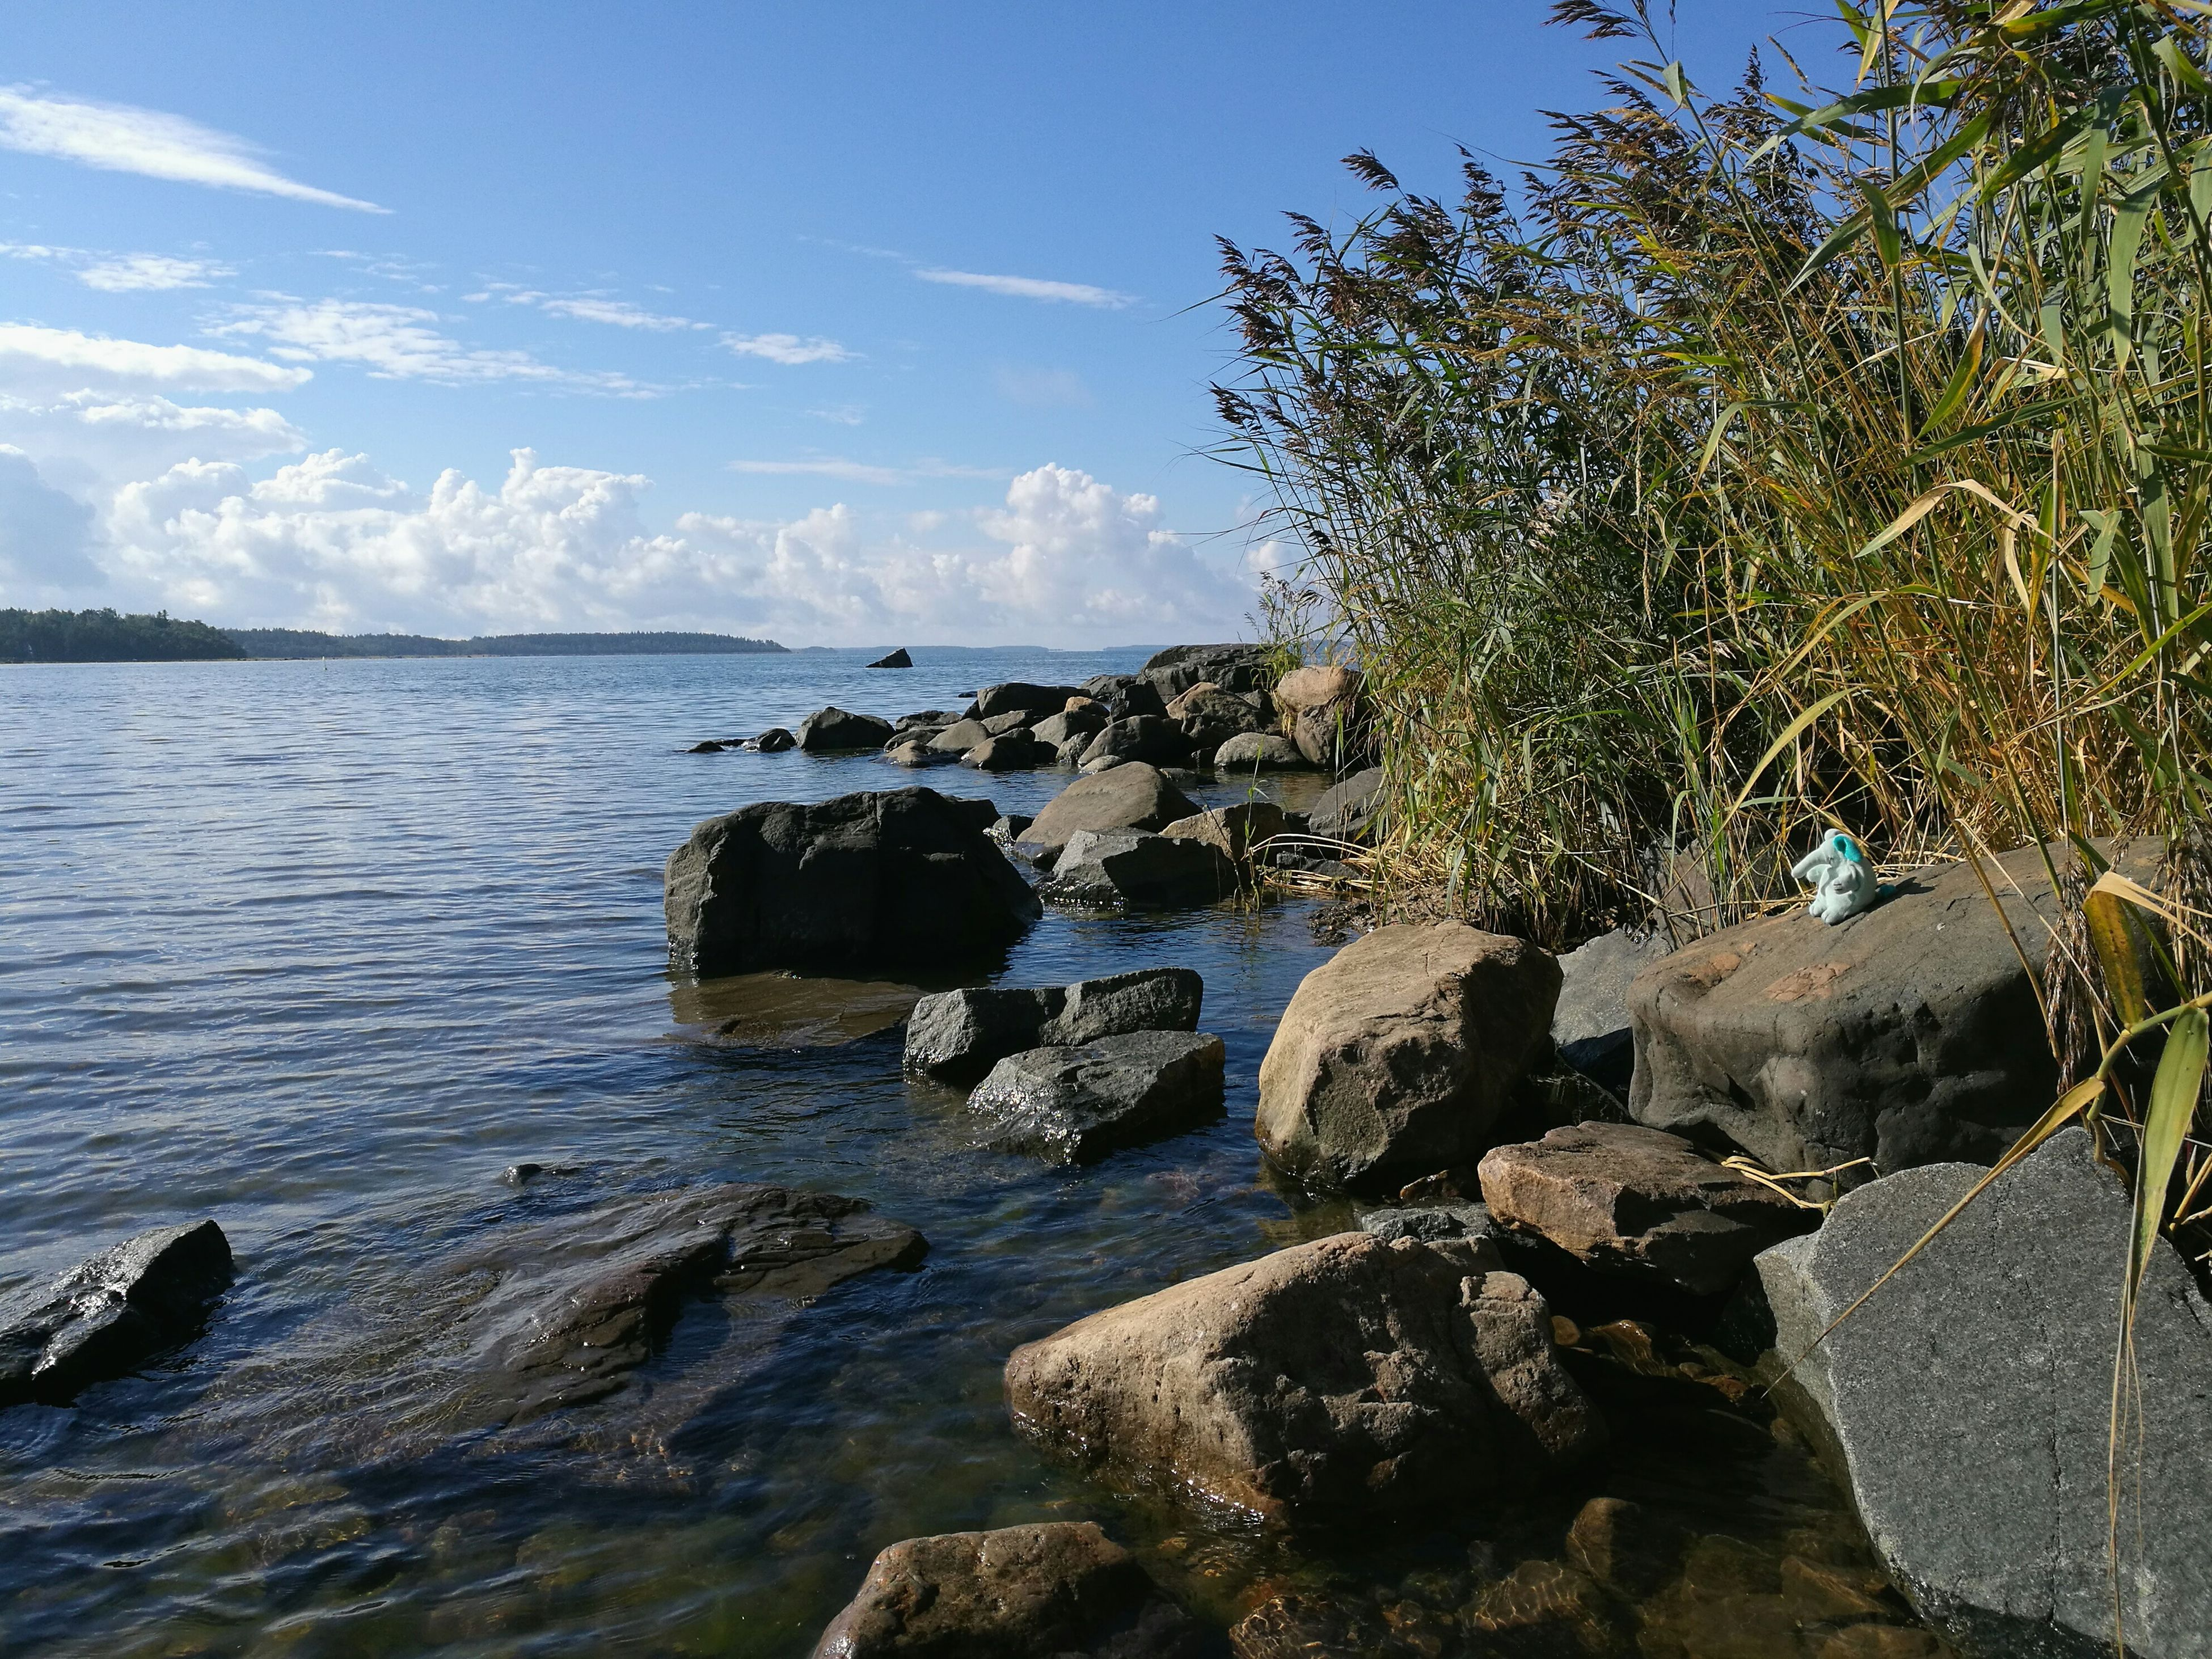 sea, water, nature, scenics, beauty in nature, sky, outdoors, no people, horizon over water, tranquility, beach, day, tree